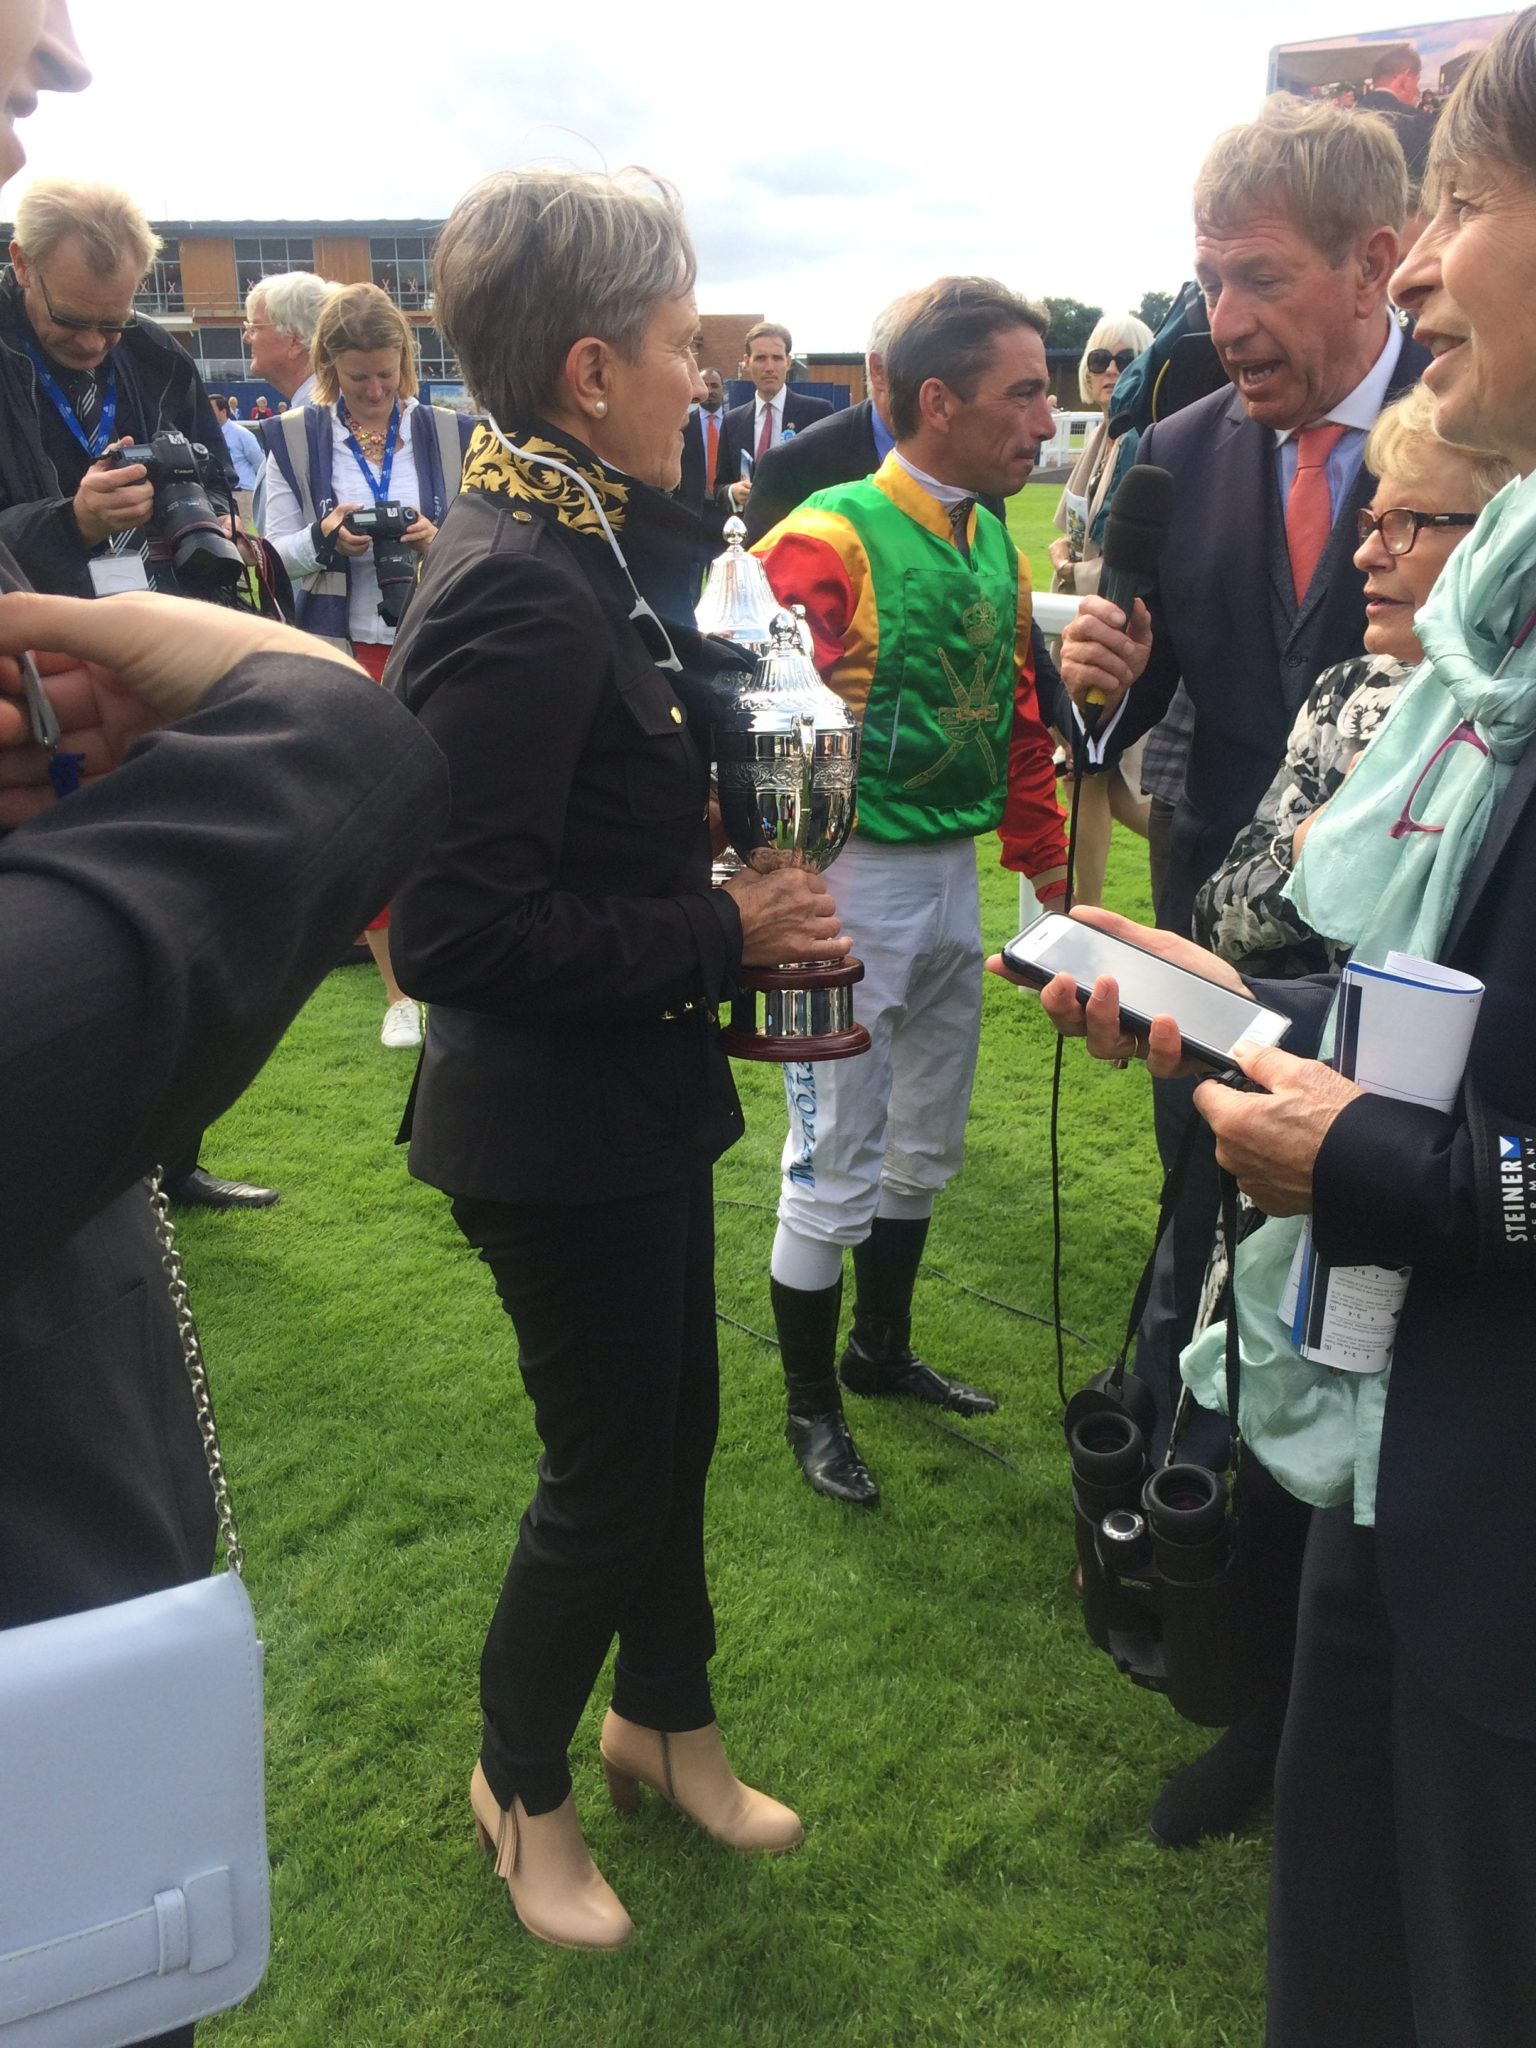 rabian race horse coach Elisabeth Bernard and jockey Jean-Bernard Eyquem being interviewed by renowned commentator Derek Thompson. Courtesy © Nabila Ramdani.